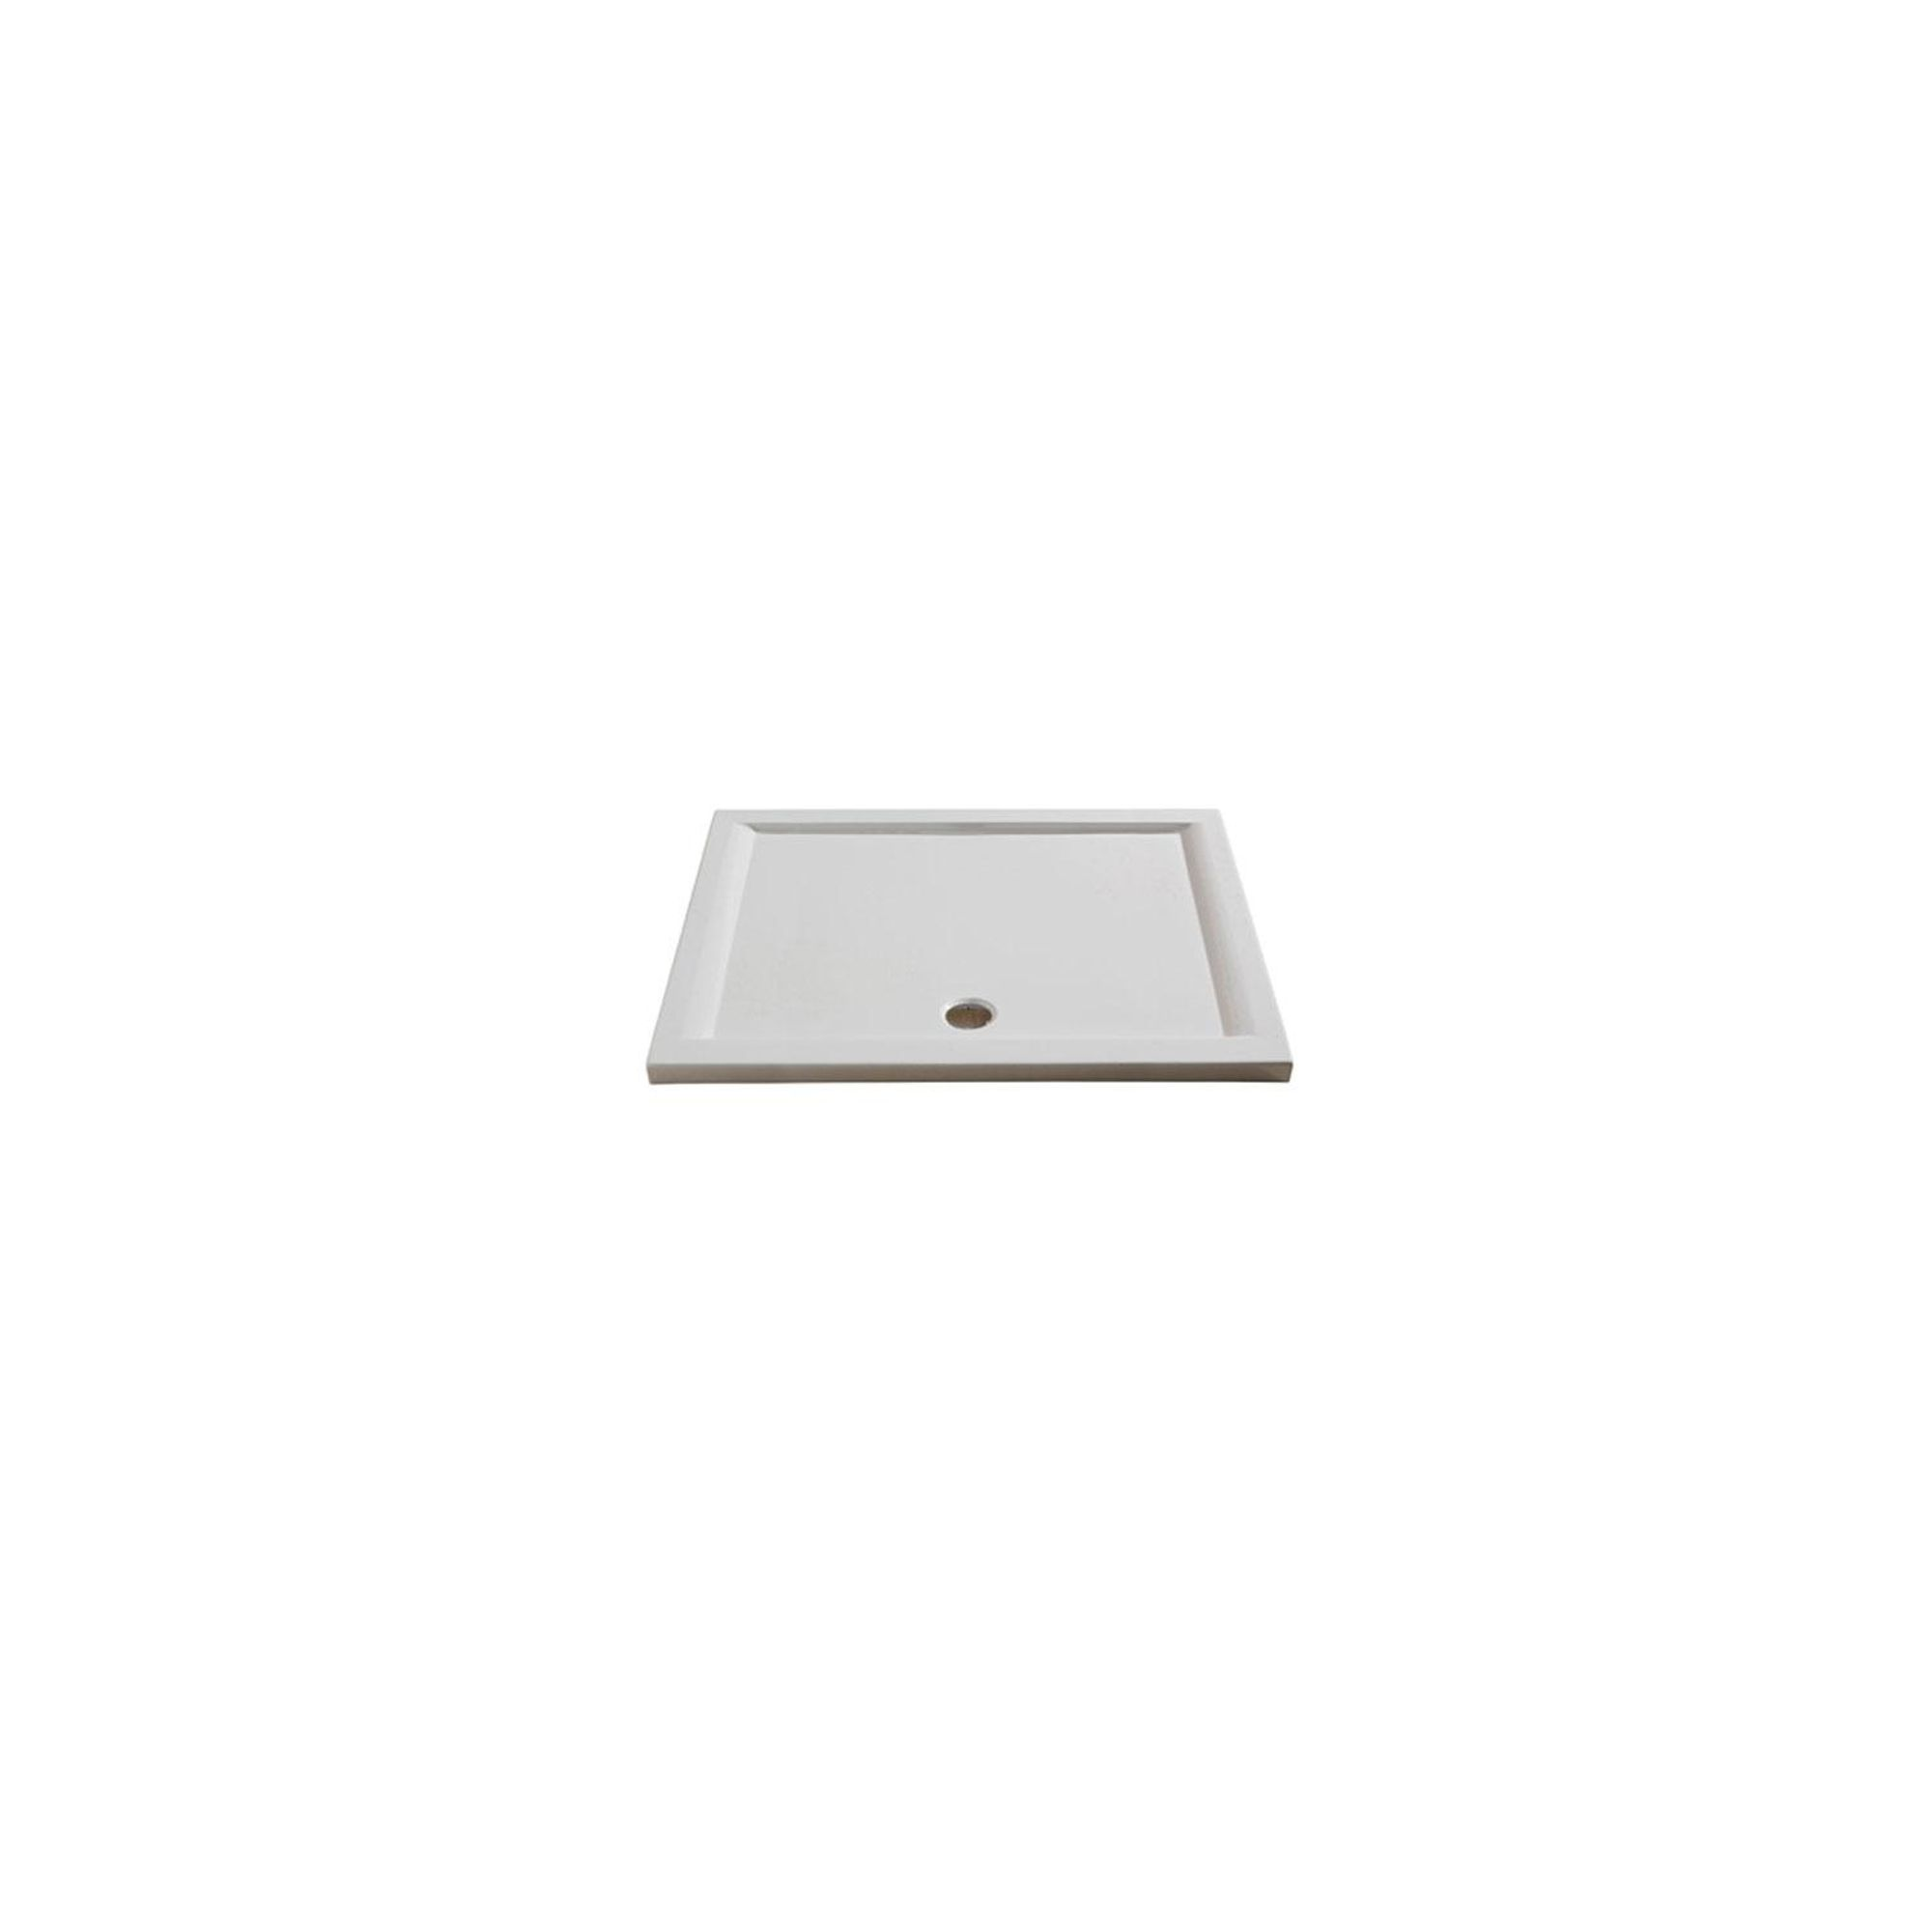 Merlyn Merlyte Low Profile Rectangular Shower Tray, 1400mm x 900mm at Tesco Direct